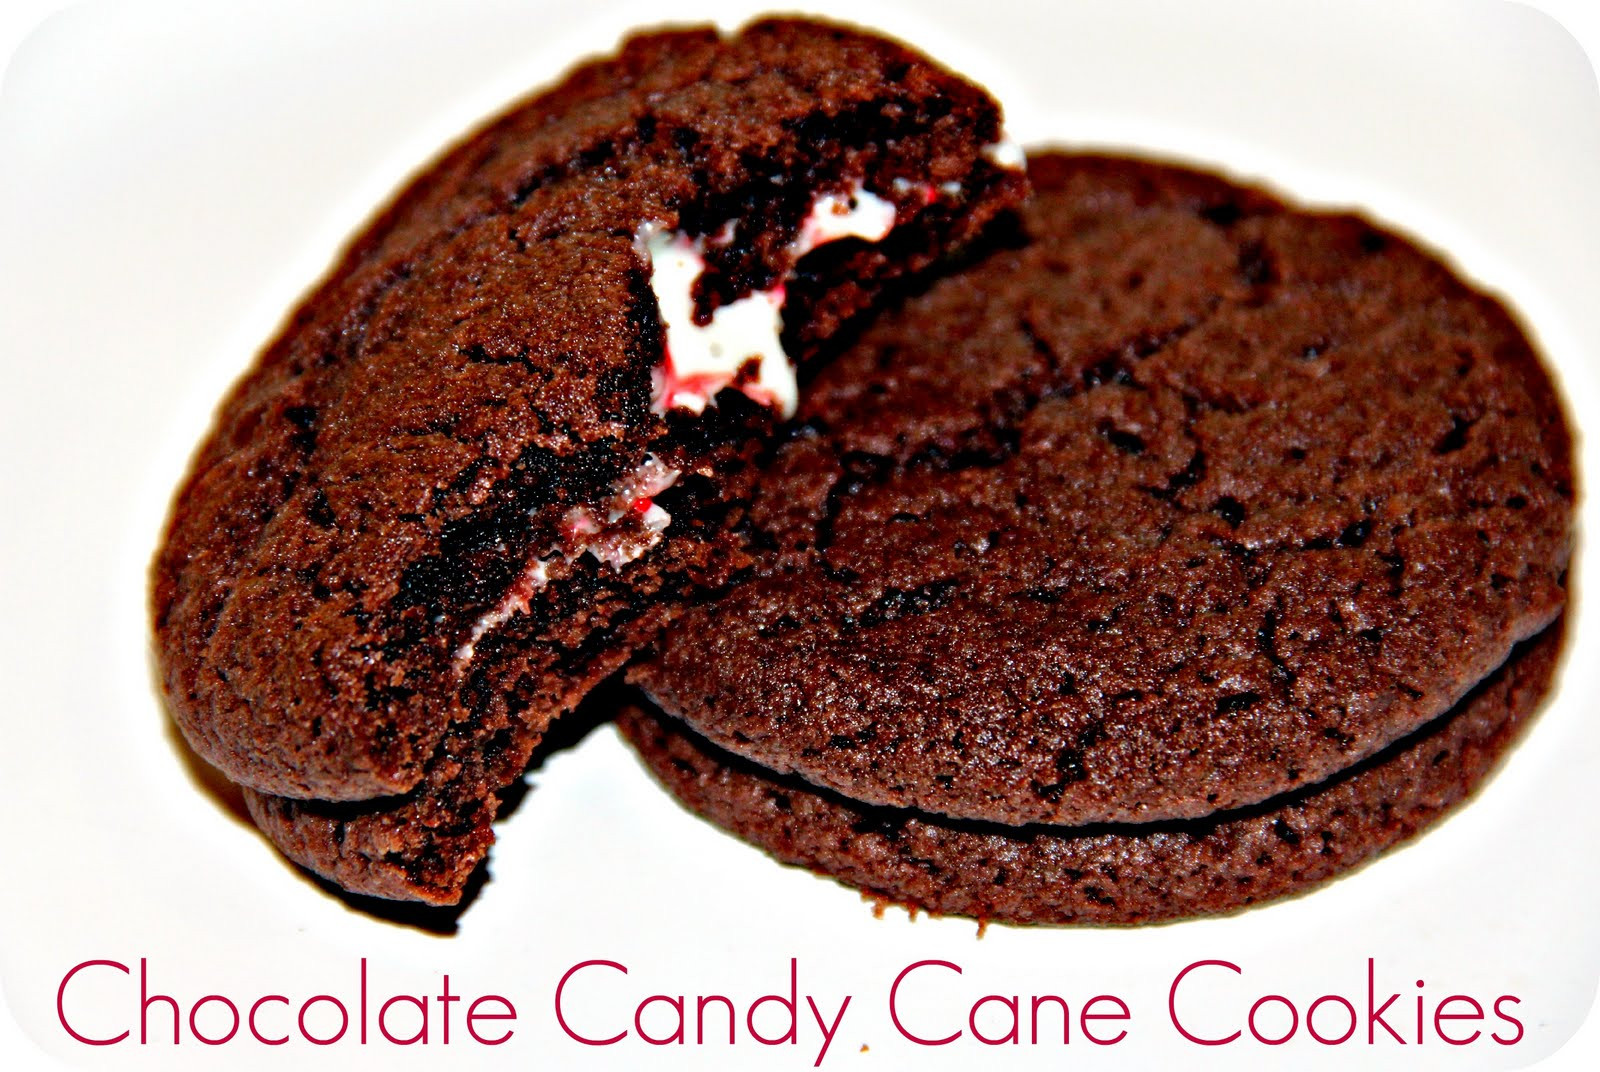 Blue Skies Ahead: Chocolate Candy Cane Cookies